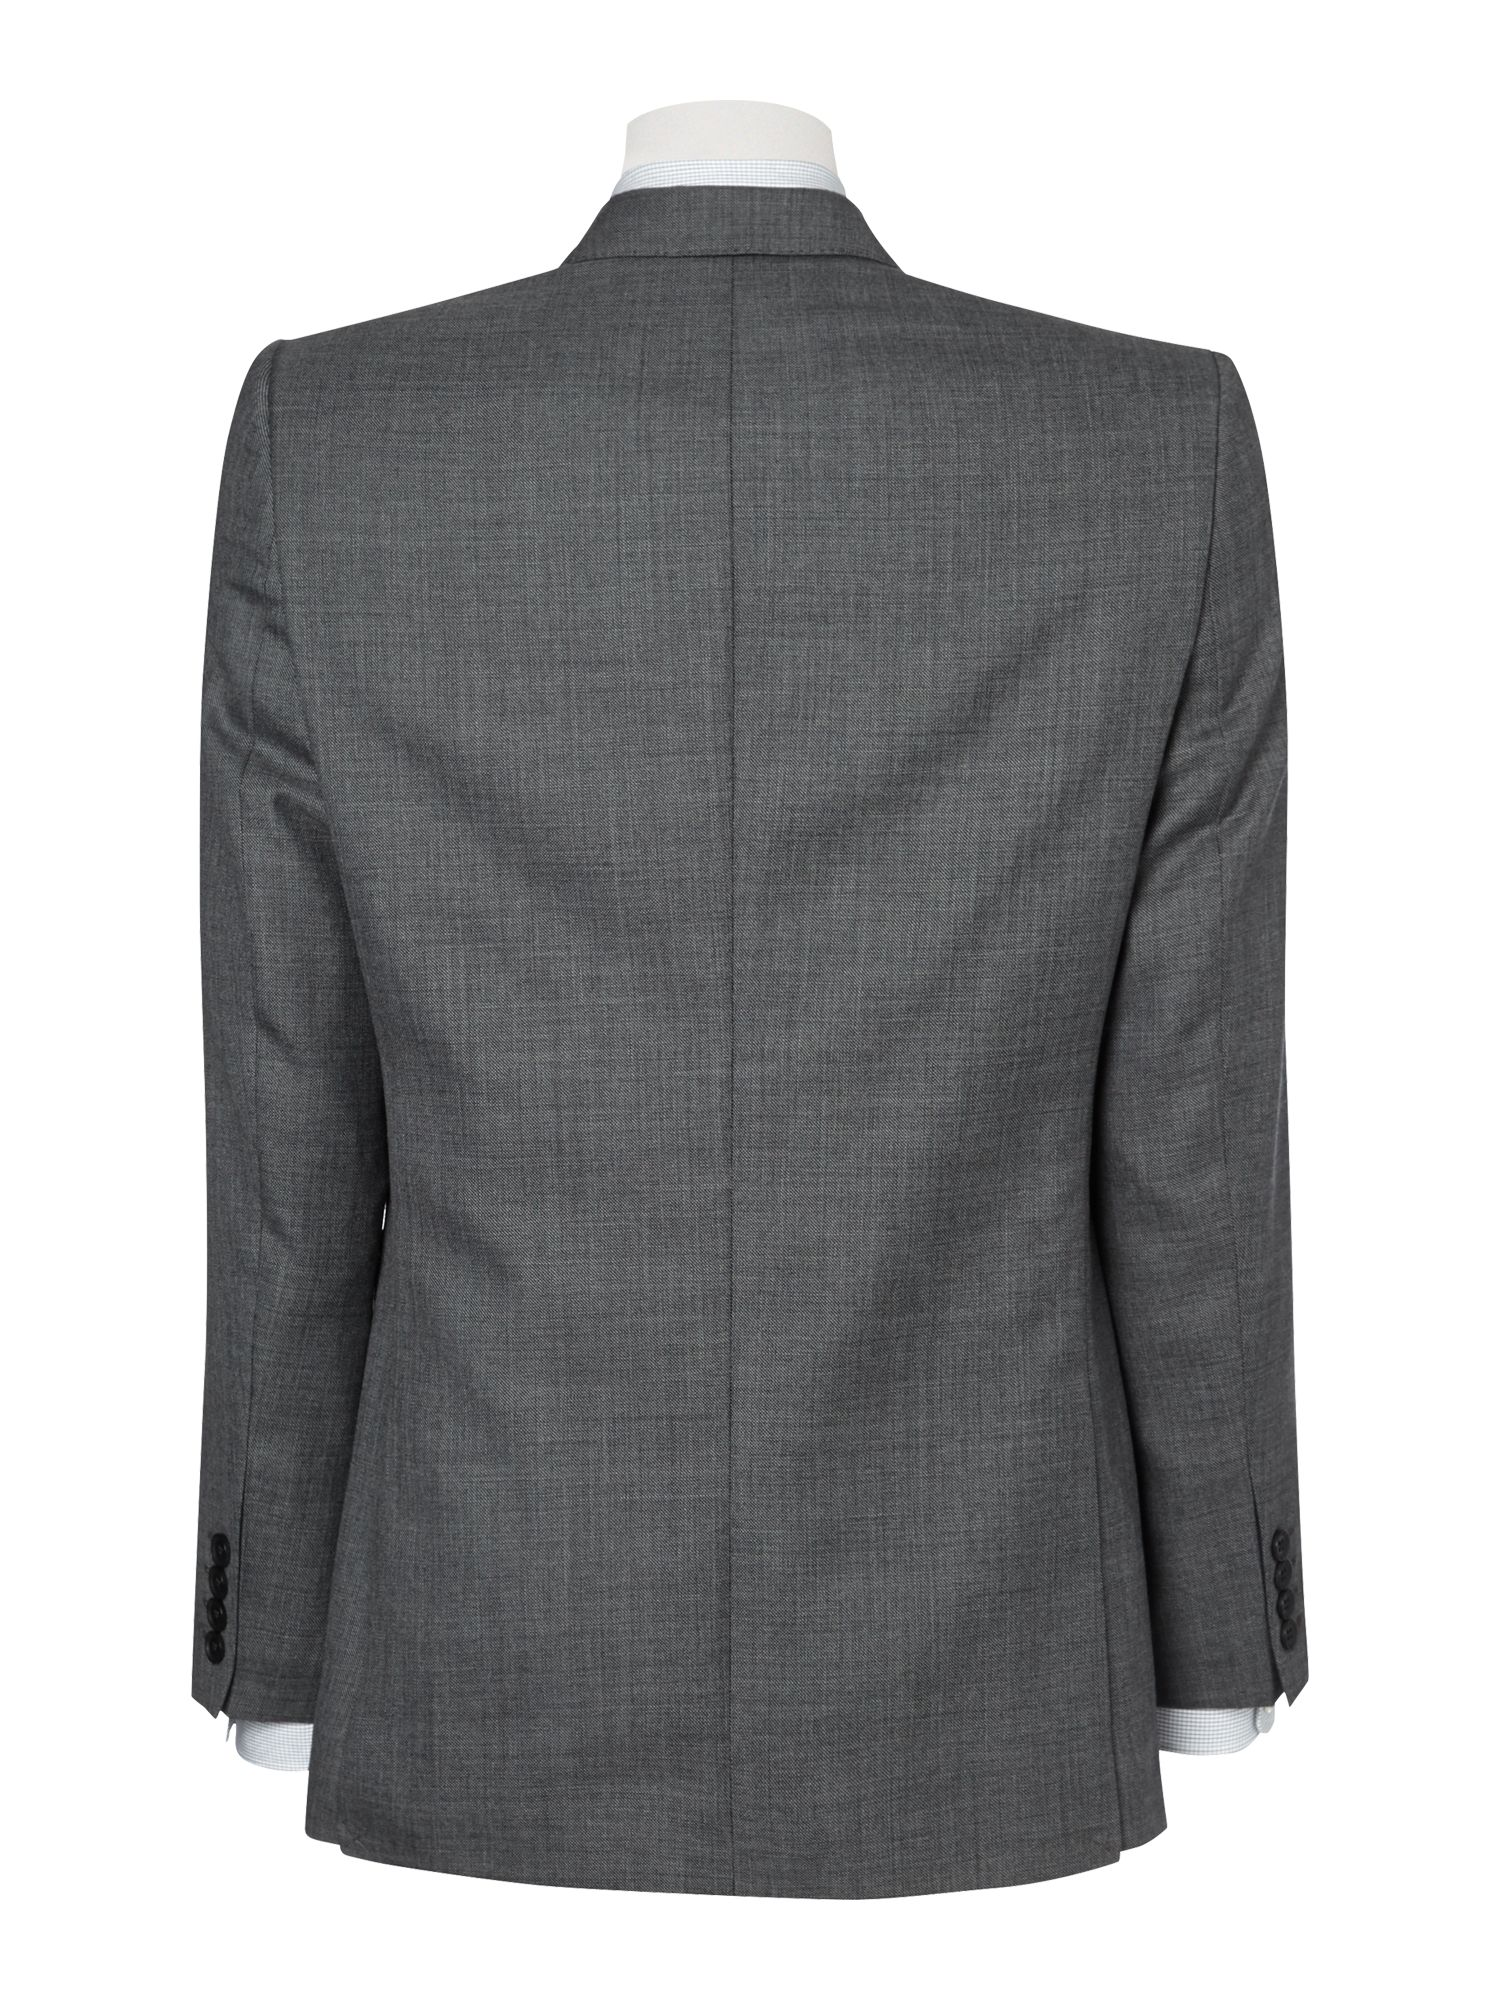 Sharkskin Mayfair fit suit